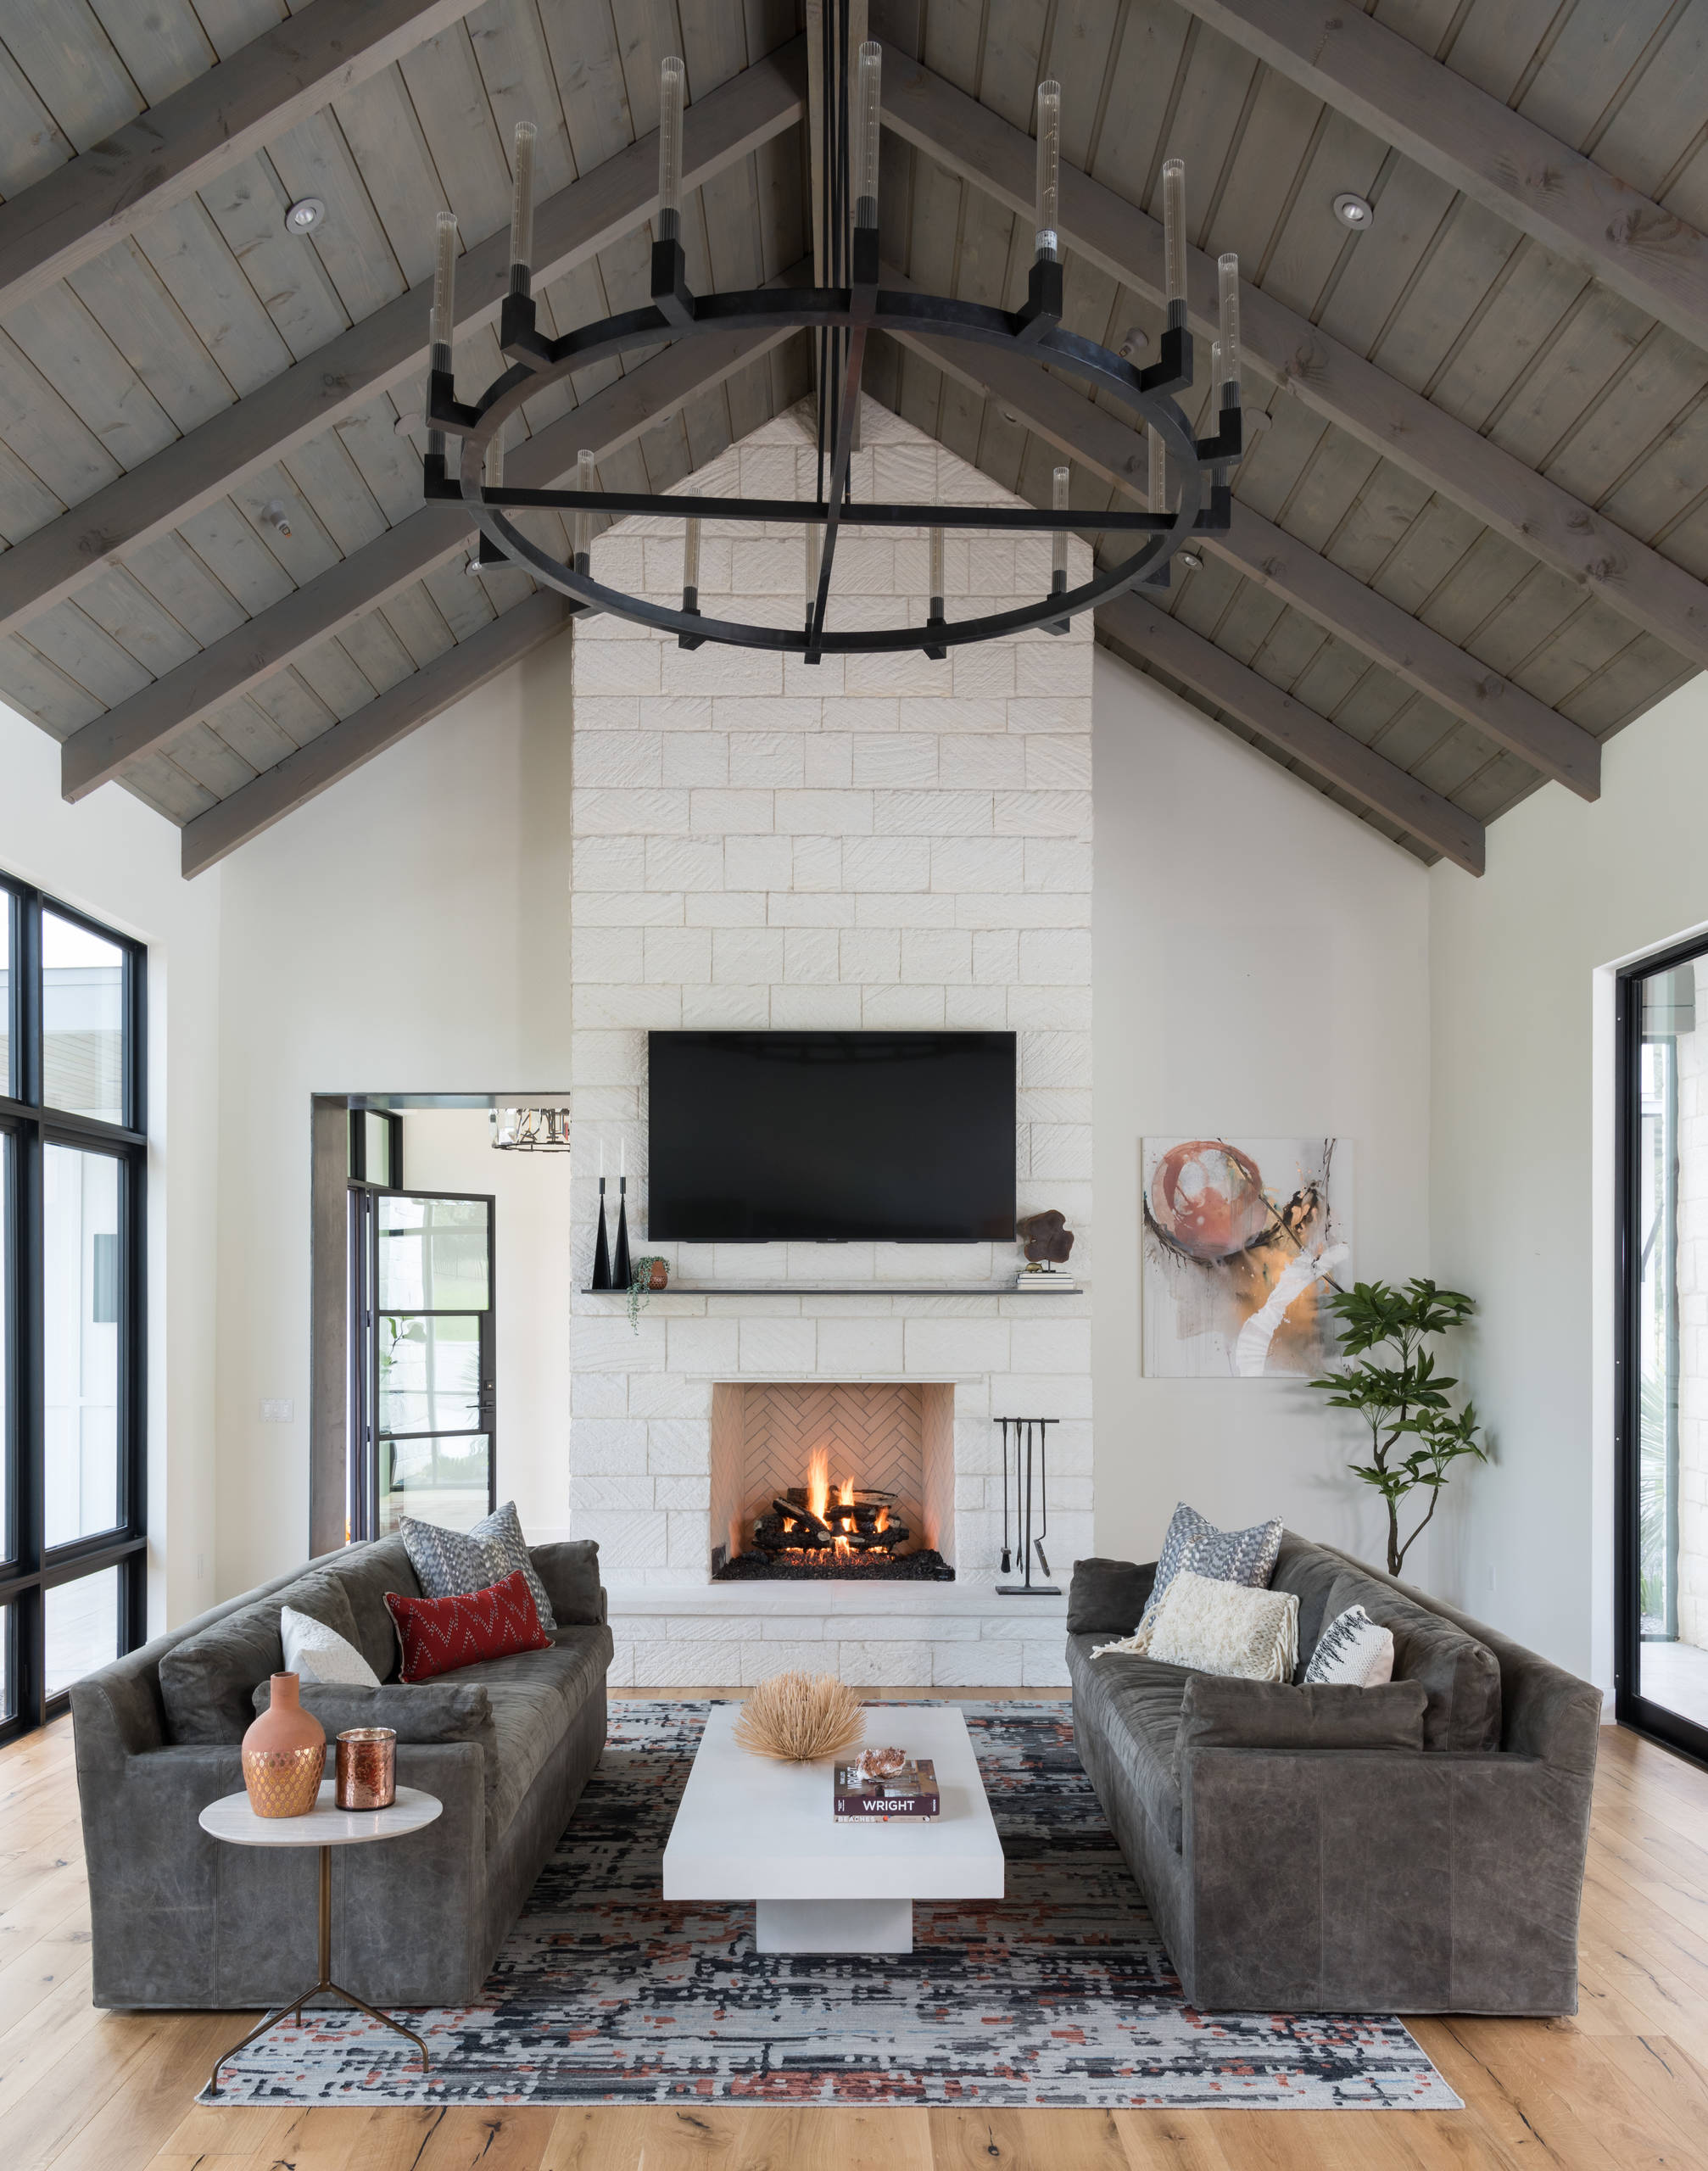 75 Beautiful Farmhouse Living Room Pictures Ideas January 2021 Houzz